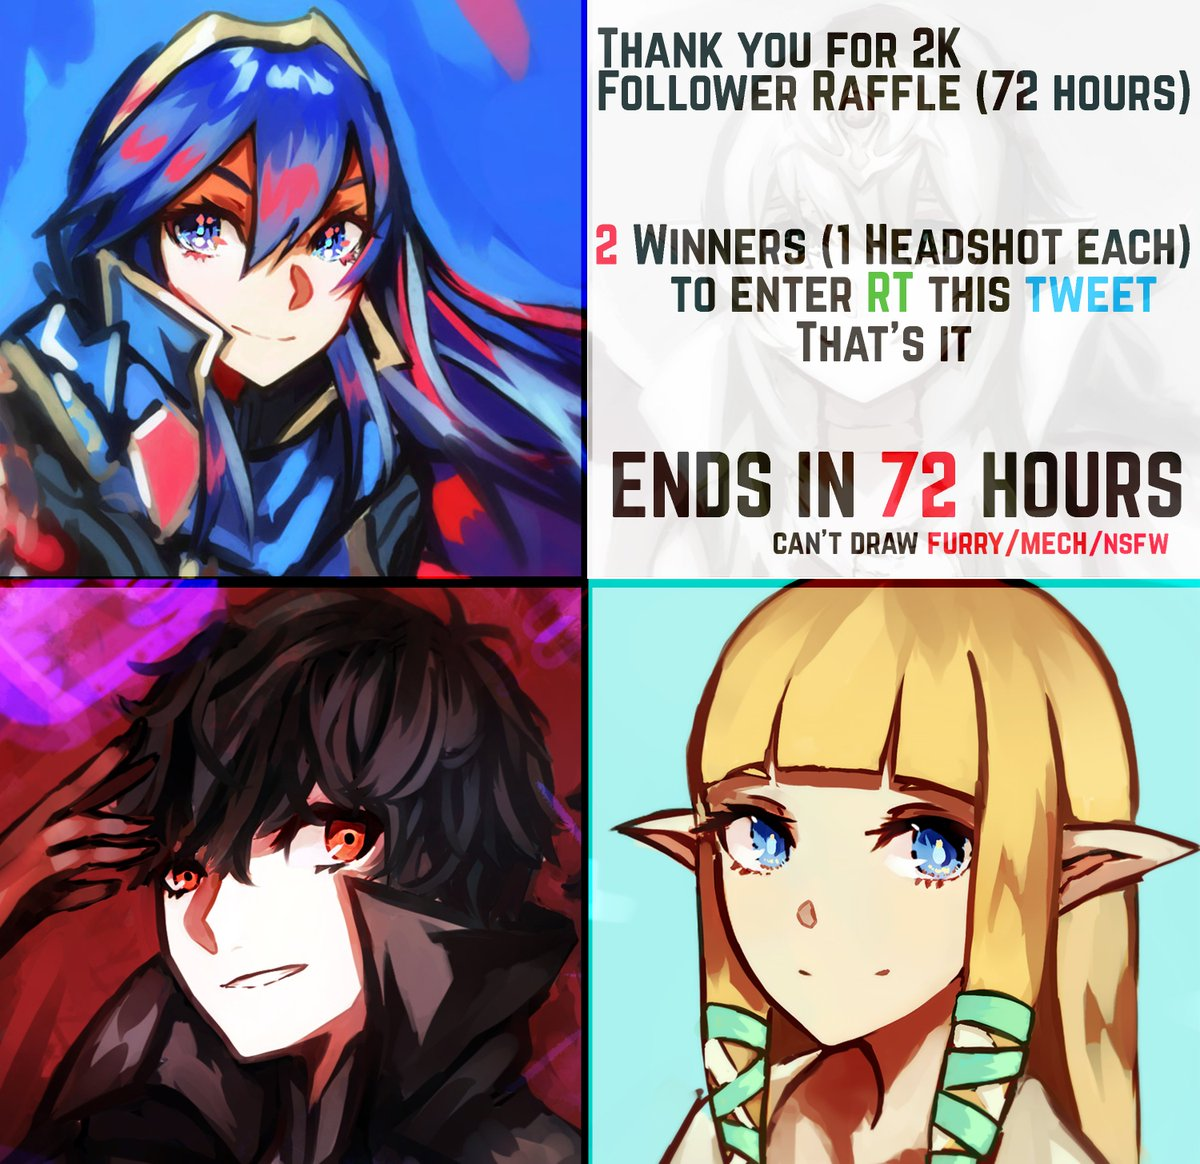 Thanks For 2K followers!  Although I couldn&#39;t prepare anything proper, Here&#39;s a quick 72-hour raffle Just retweet to enter(no need to follow) and I&#39;ll pick 2 winners in 3 days time Thanks again everyone~ <br>http://pic.twitter.com/NCE3YtwLZR